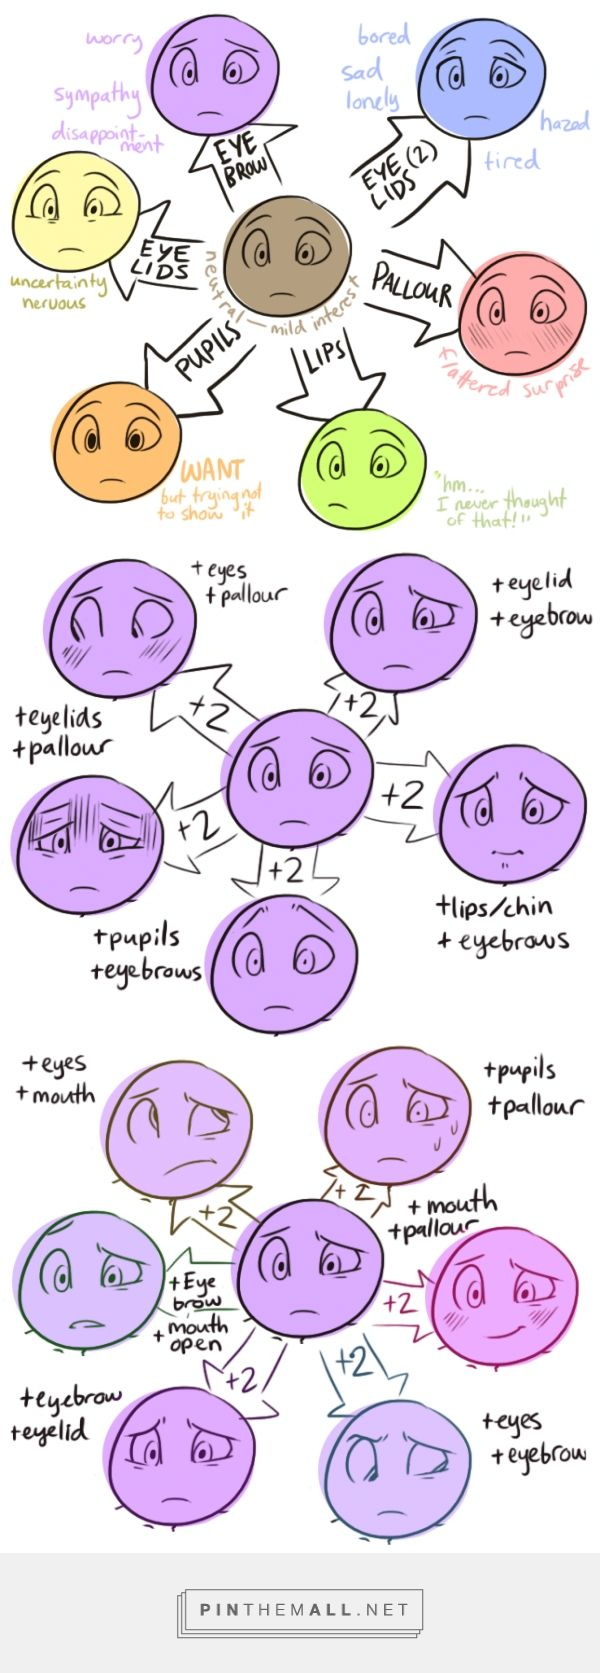 How to, step-by-step, make expressions mean different things by changing just one facial feature at a time: http://elle-est-aimee.tumblr.com/post/7099... ★ || CHARACTER DESIGN REFERENCES (https://www.facebook.com/CharacterDesignReferences & https://www.pinterest.com/characterdesigh) • Love Character Design? Join the #CDChallenge (link→ https://www.facebook.com/groups/CharacterDesignChallenge) Share your unique vision of a theme, promote your art in a community of over 25.000 artists! || ★